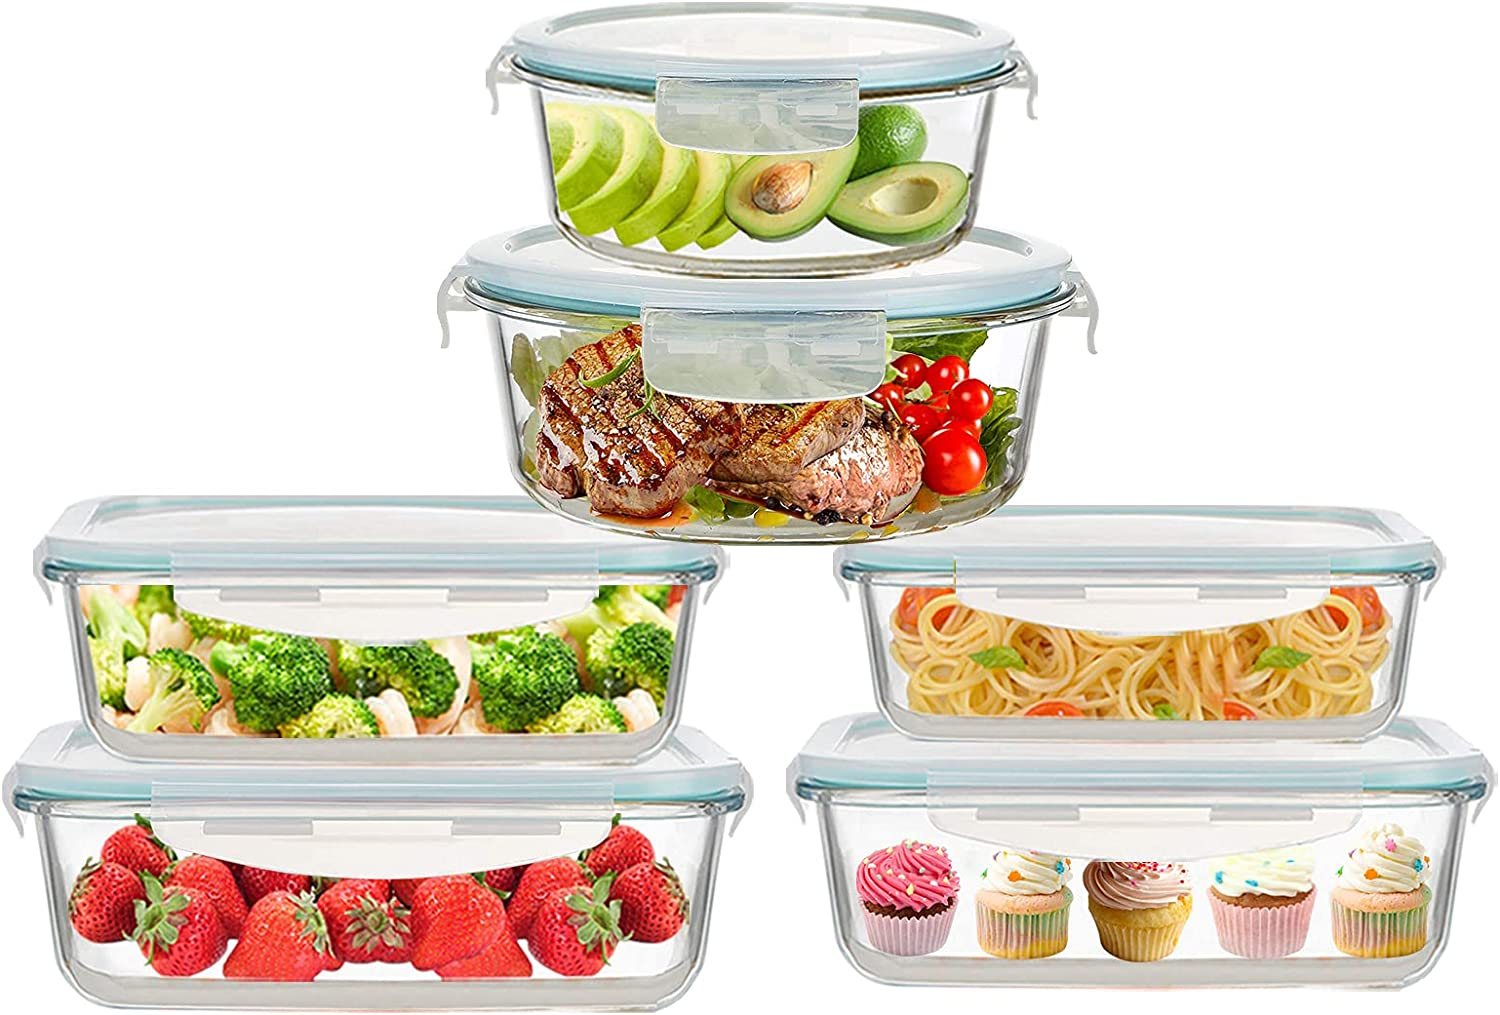 ROSOS Glass Food Storage Containers with Lids 12 Pieces, Airtight Glass Meal Prep Containers BPA Free & Leak Proof, Glass Lunch Containers Microwave/Oven/Dishwasher Safe (6 Set) Blue